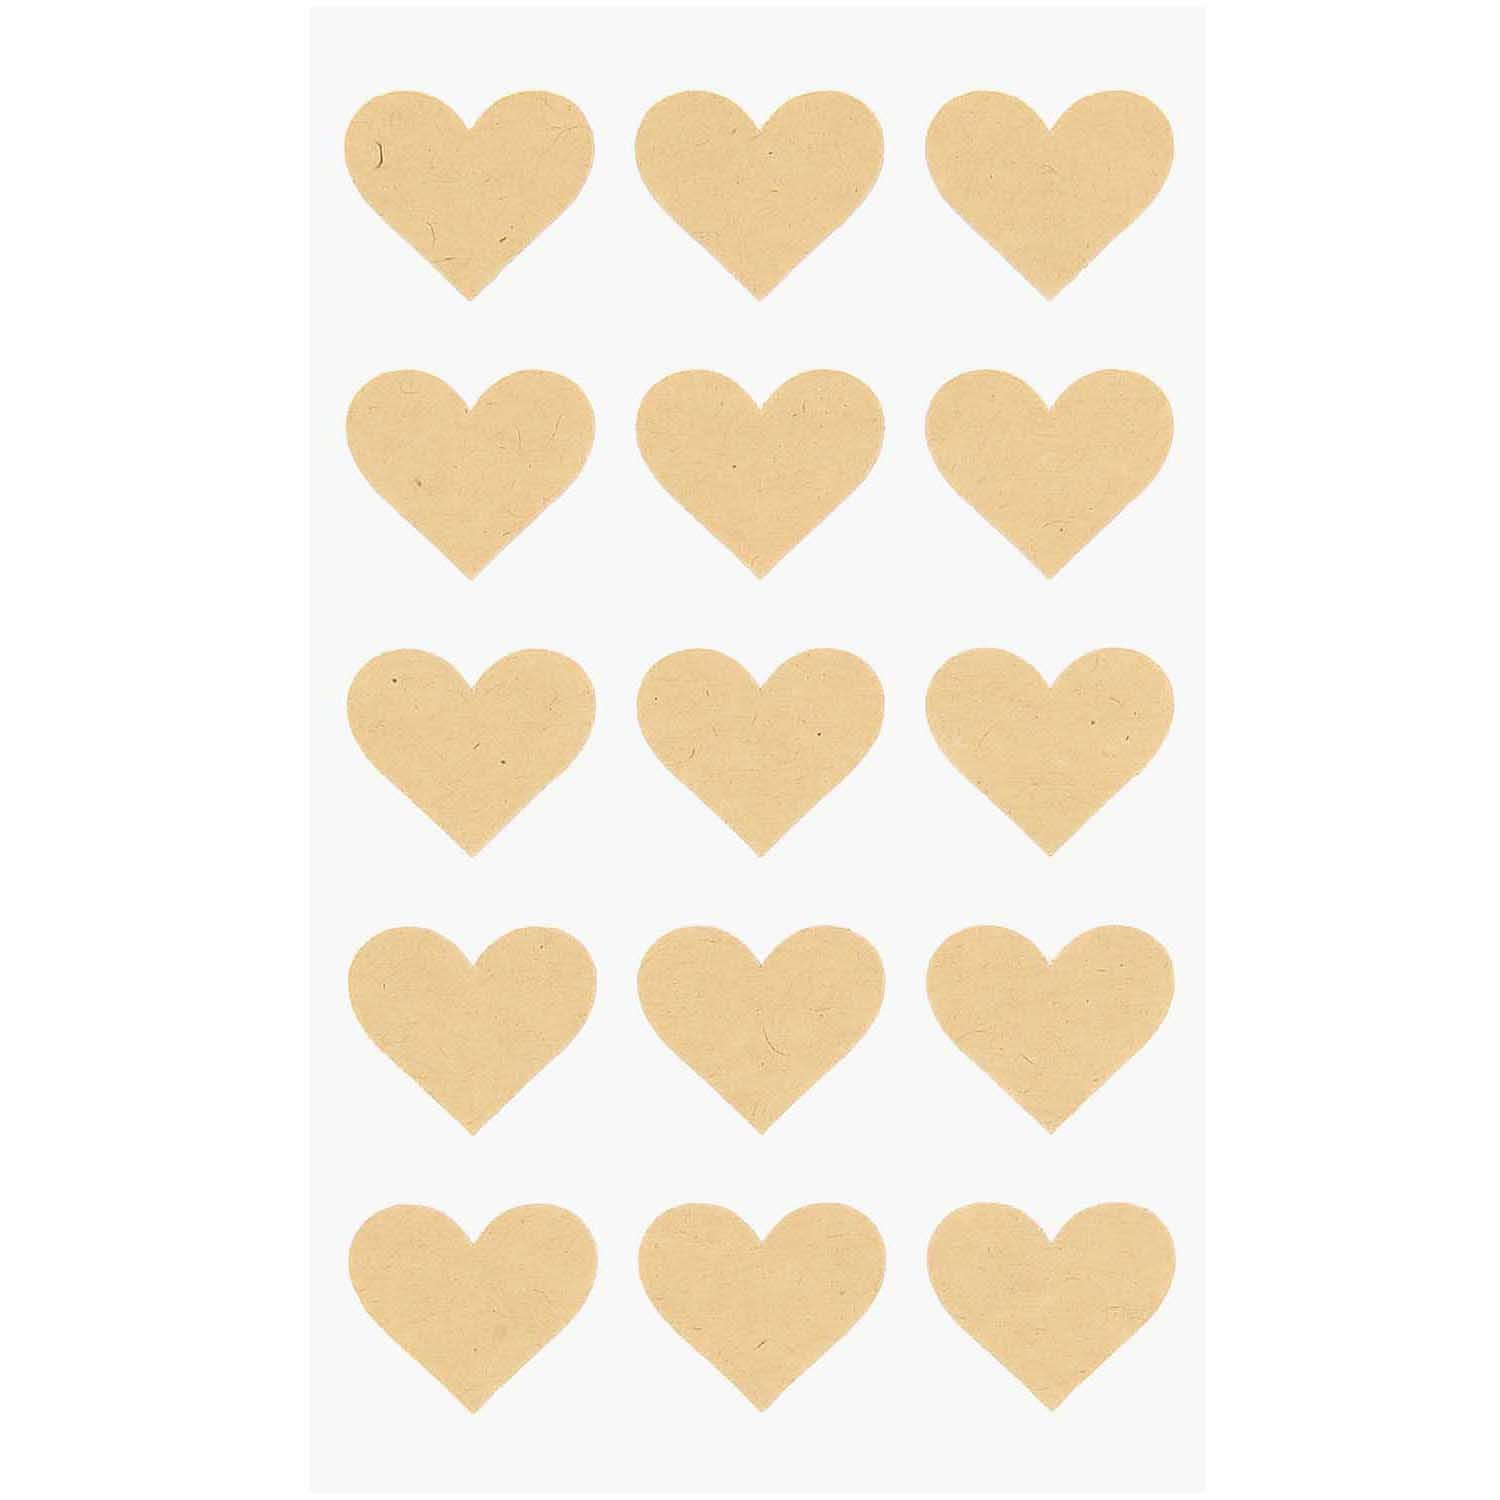 Rico NAY CRAFT PAPER STICKERS, HEARTS 15 X 10 CM, 60 PCS